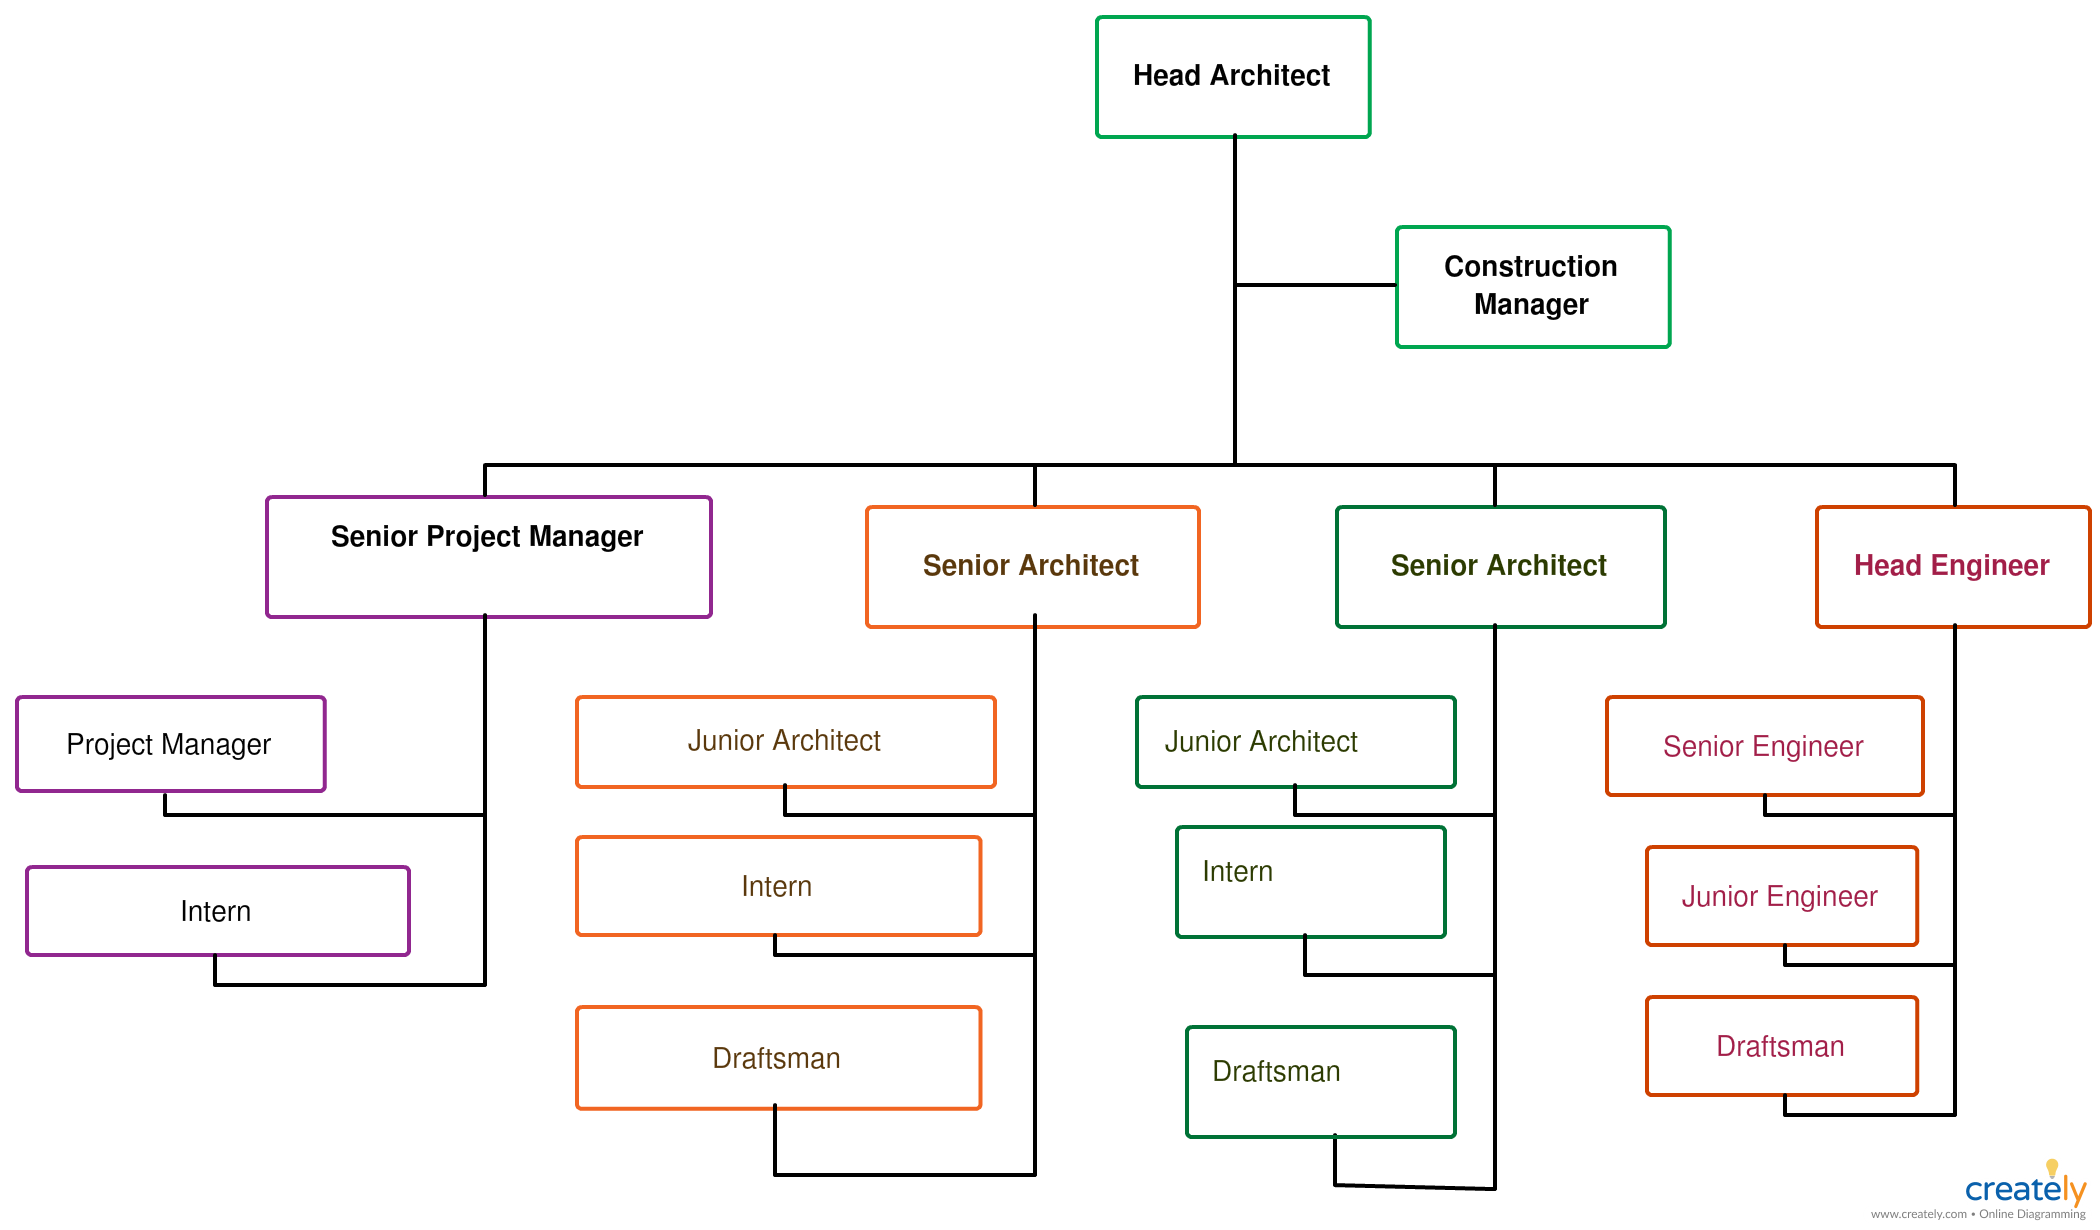 Organization Chart Of Architecture Firm